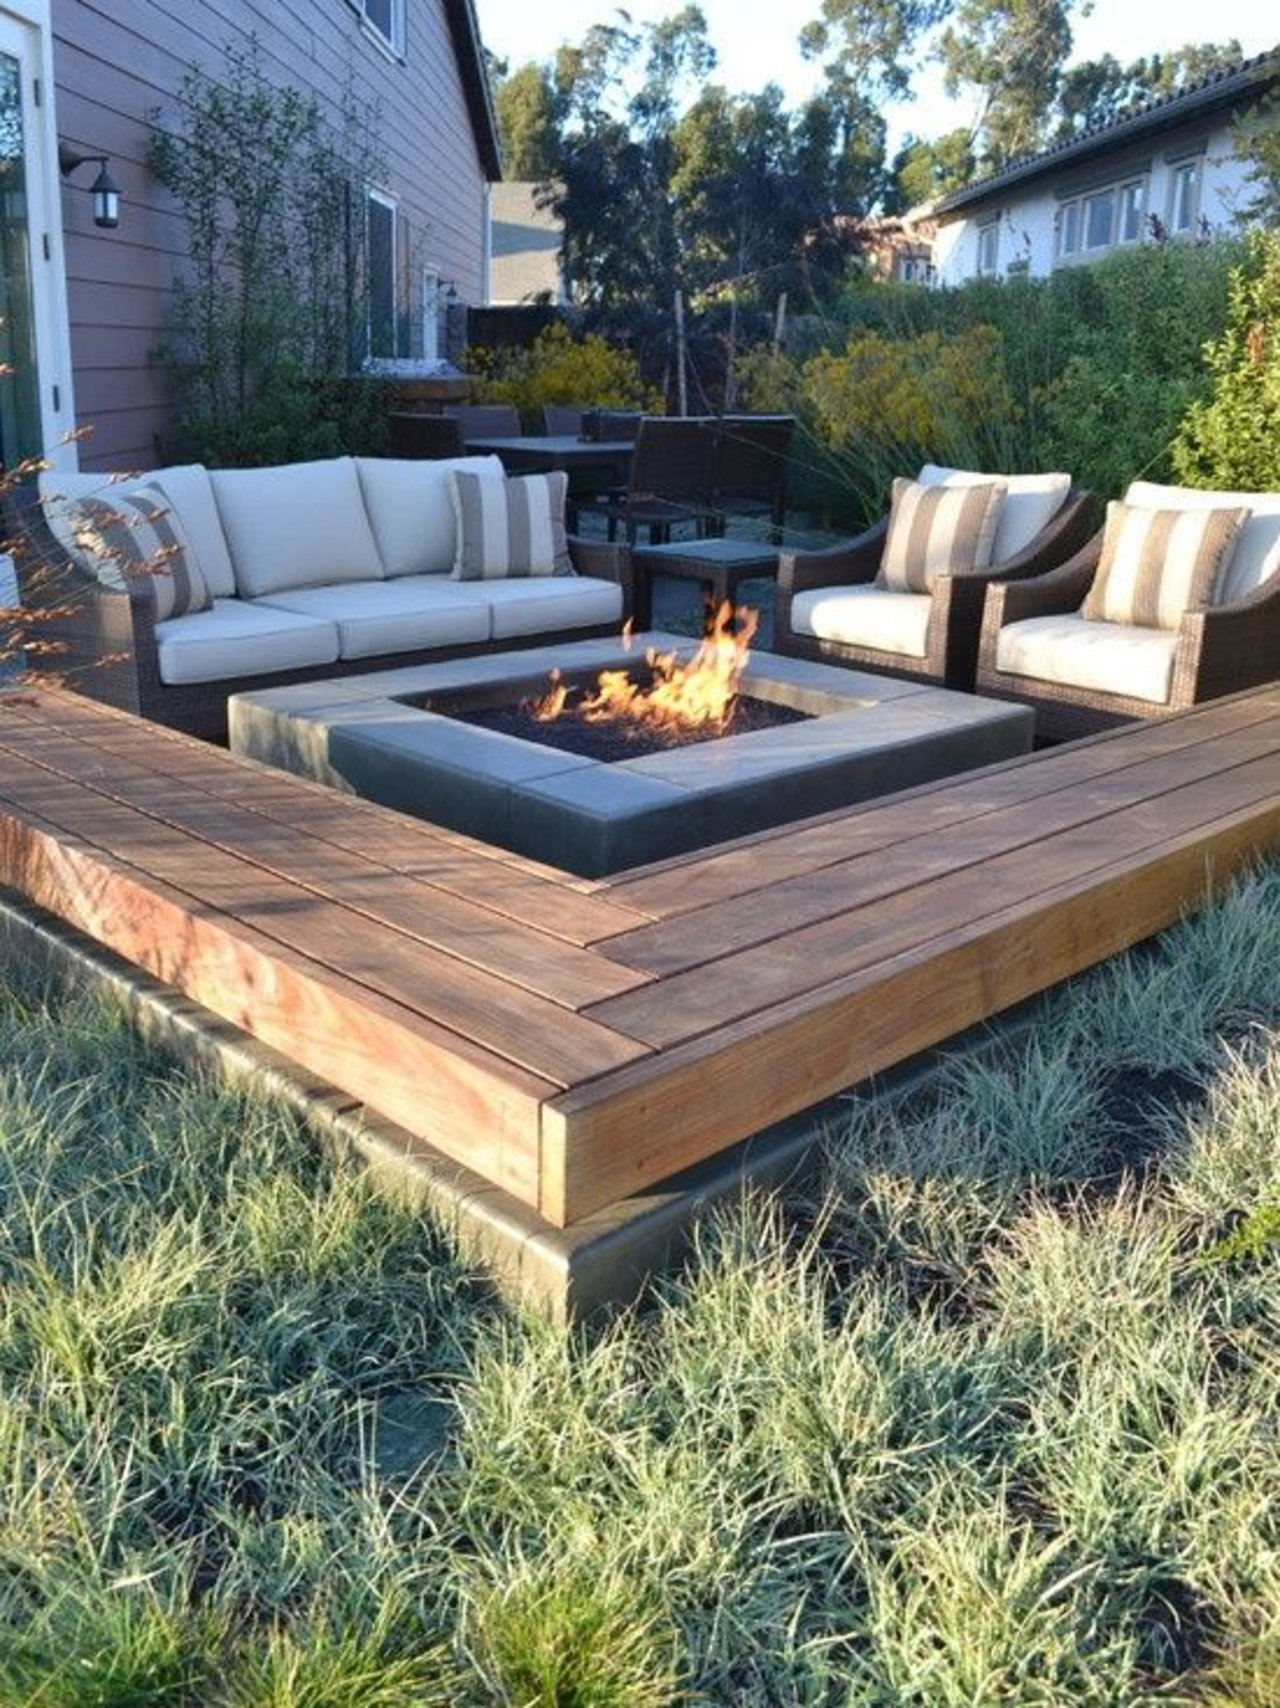 12. Centered Fire Pit With Sofa and Matching Armchairs - 25 Best DIY Patio Decoration Ideas And Designs For 2018